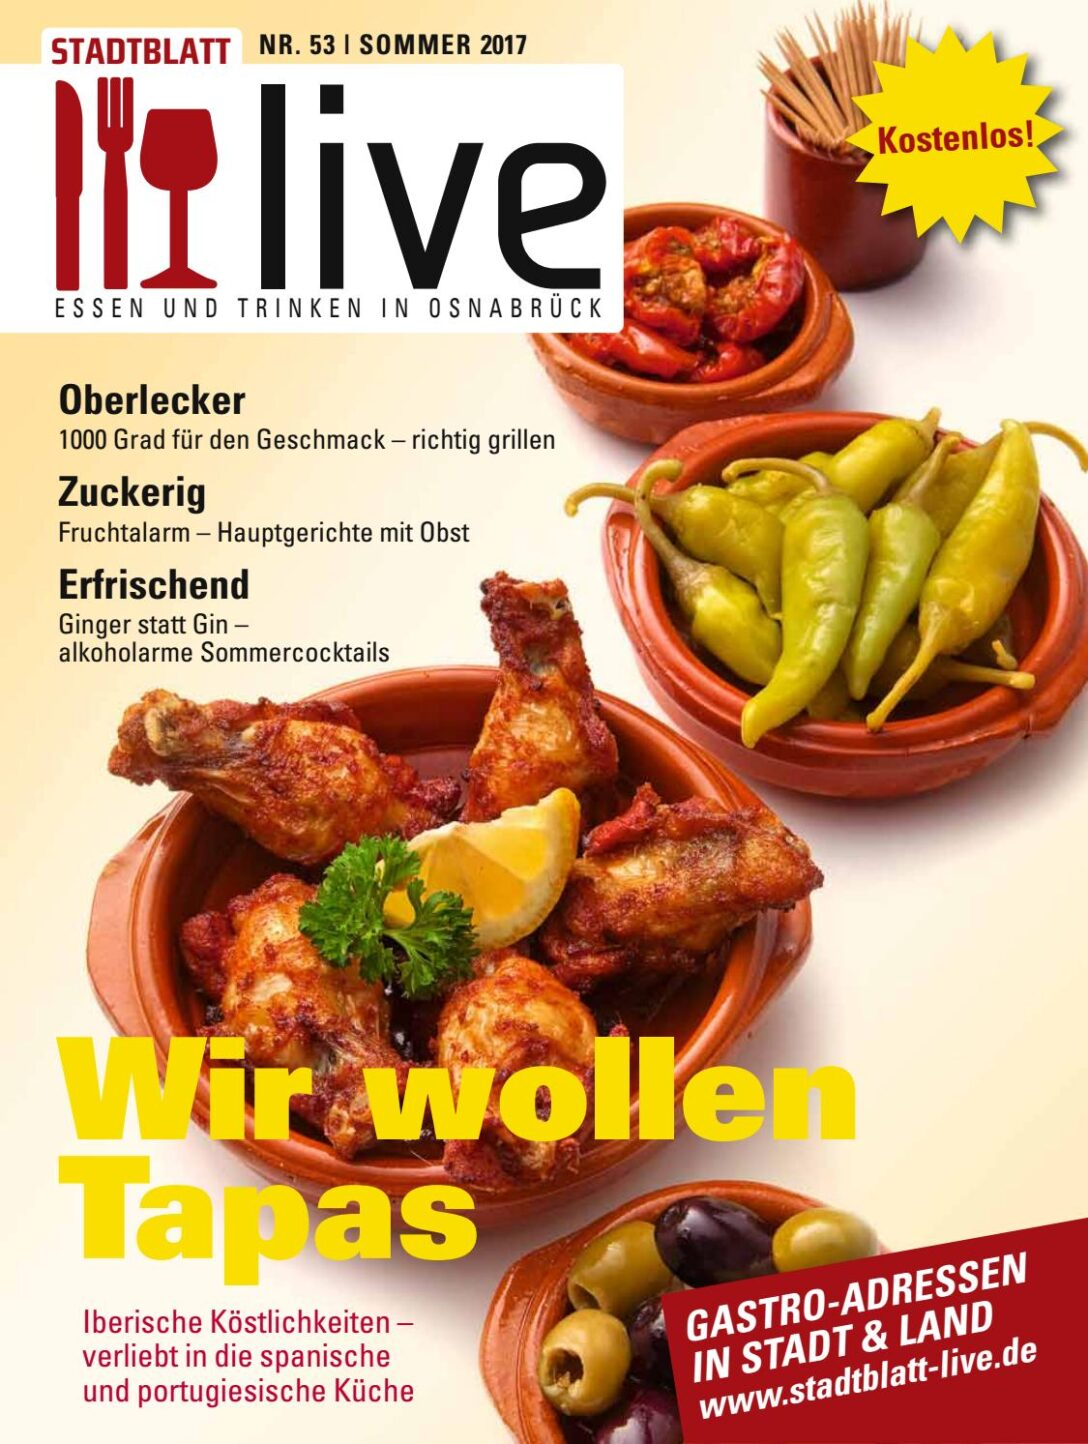 Large Size of Stadtblatt Live Sommer 2017 By Bvw Werbeagentur Midischrank Bad Küche Anthrazit Regal Dachschräge Schranksysteme Schlafzimmer Zwangsbelüftung Fenster Wohnzimmer Hr Leckere Landküche Rezepte